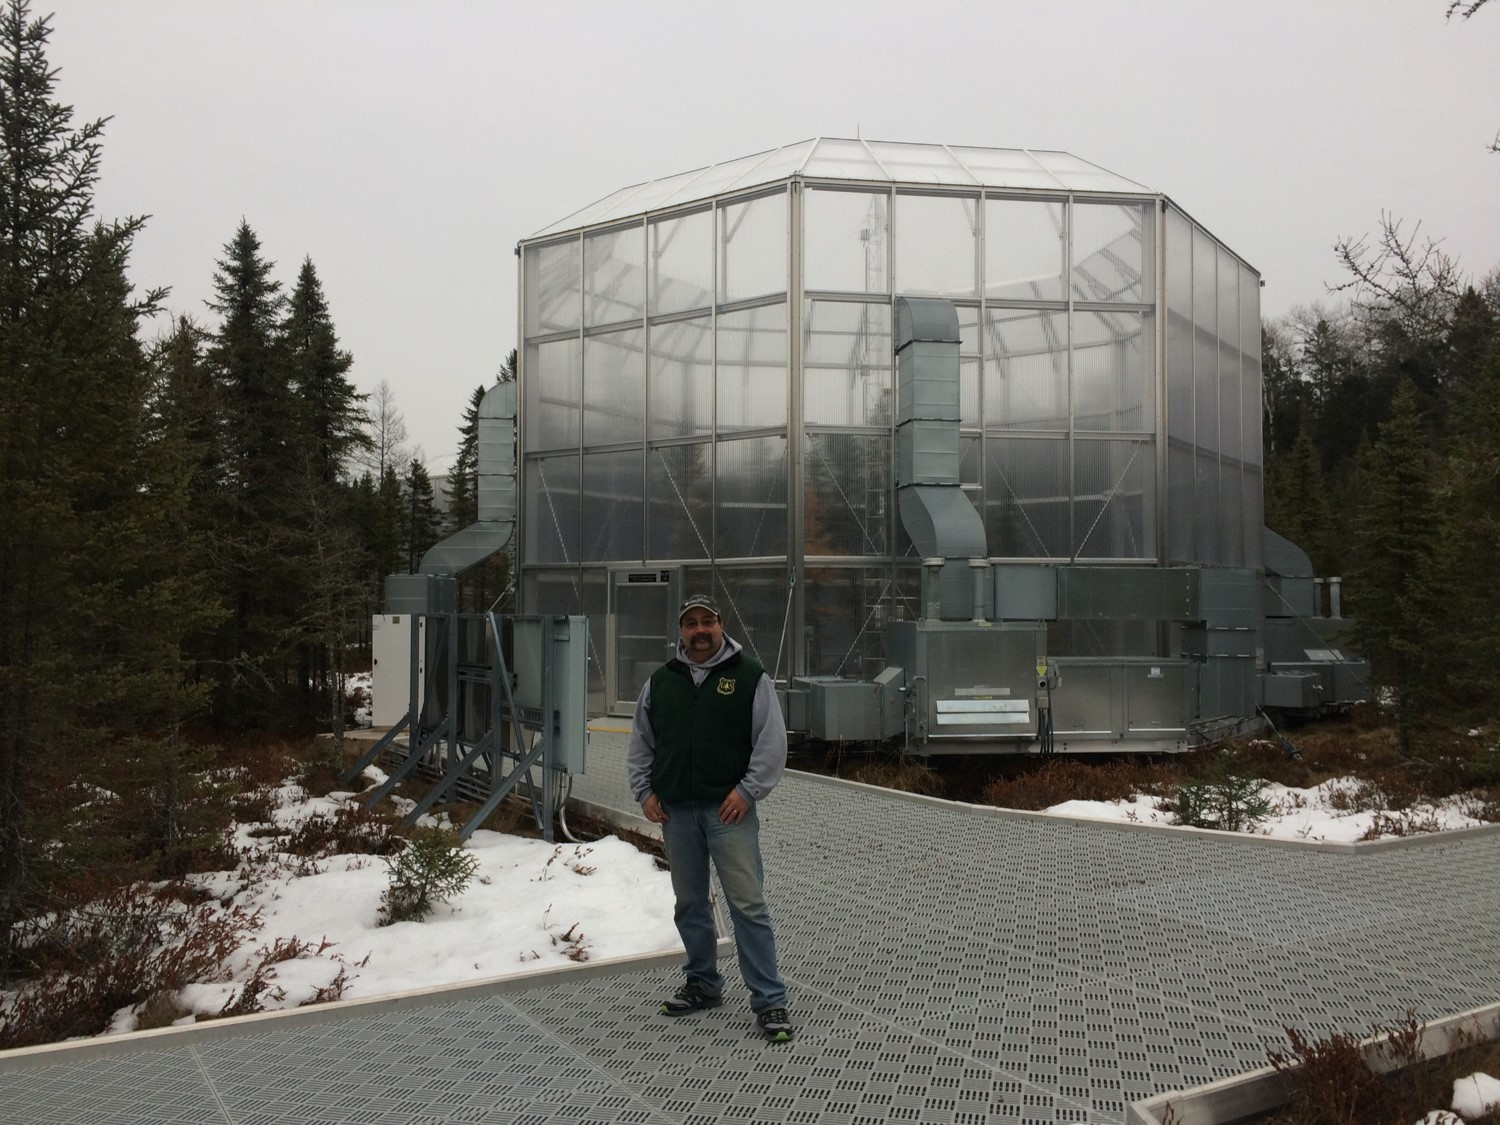 Randy Kolka in front of one of the SPRUCE (Spruce and Peatland Reponses under Changing Environments) experimental chambers at the Marcell Experimental Forest in northern Minnesota.